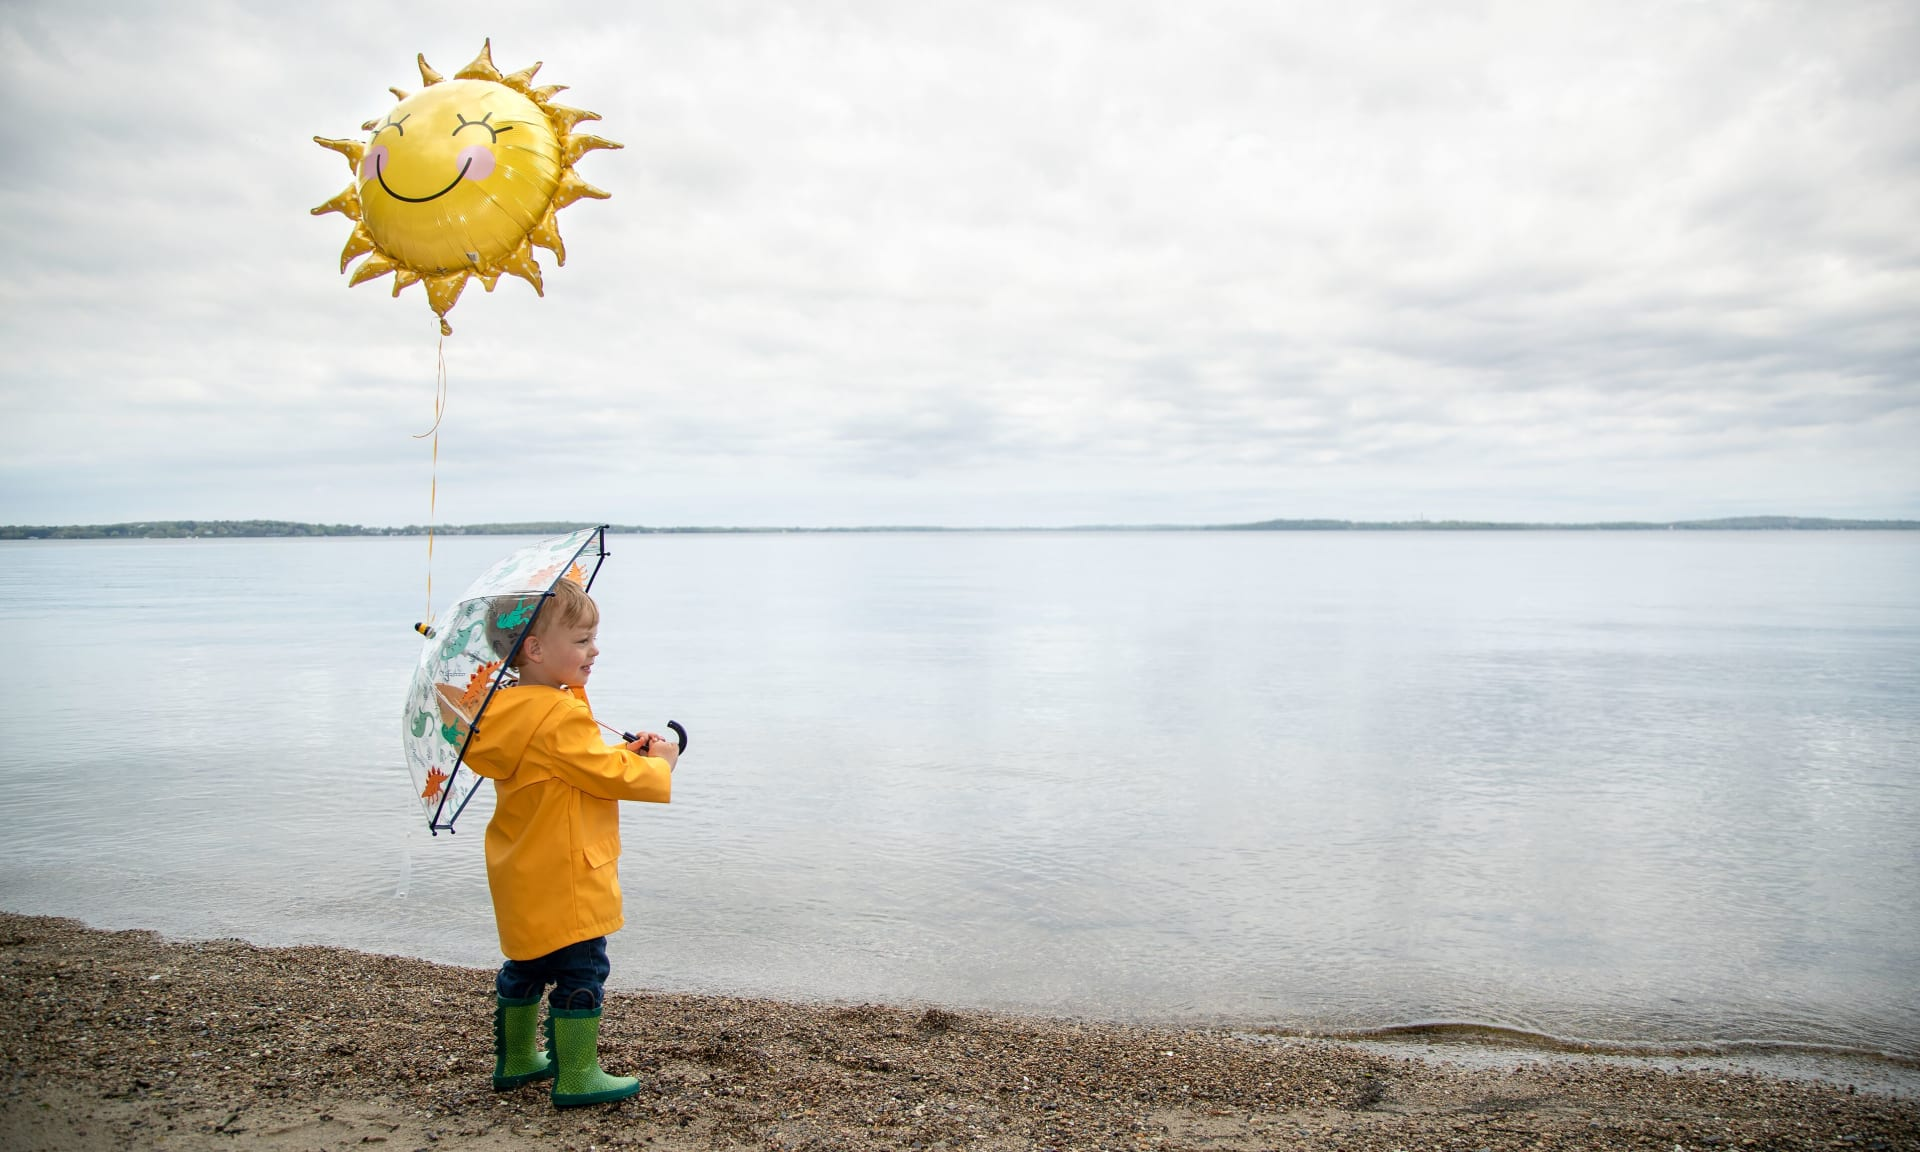 Small boy on the shore of a lake, dressed in a raincoat and holding a balloon.